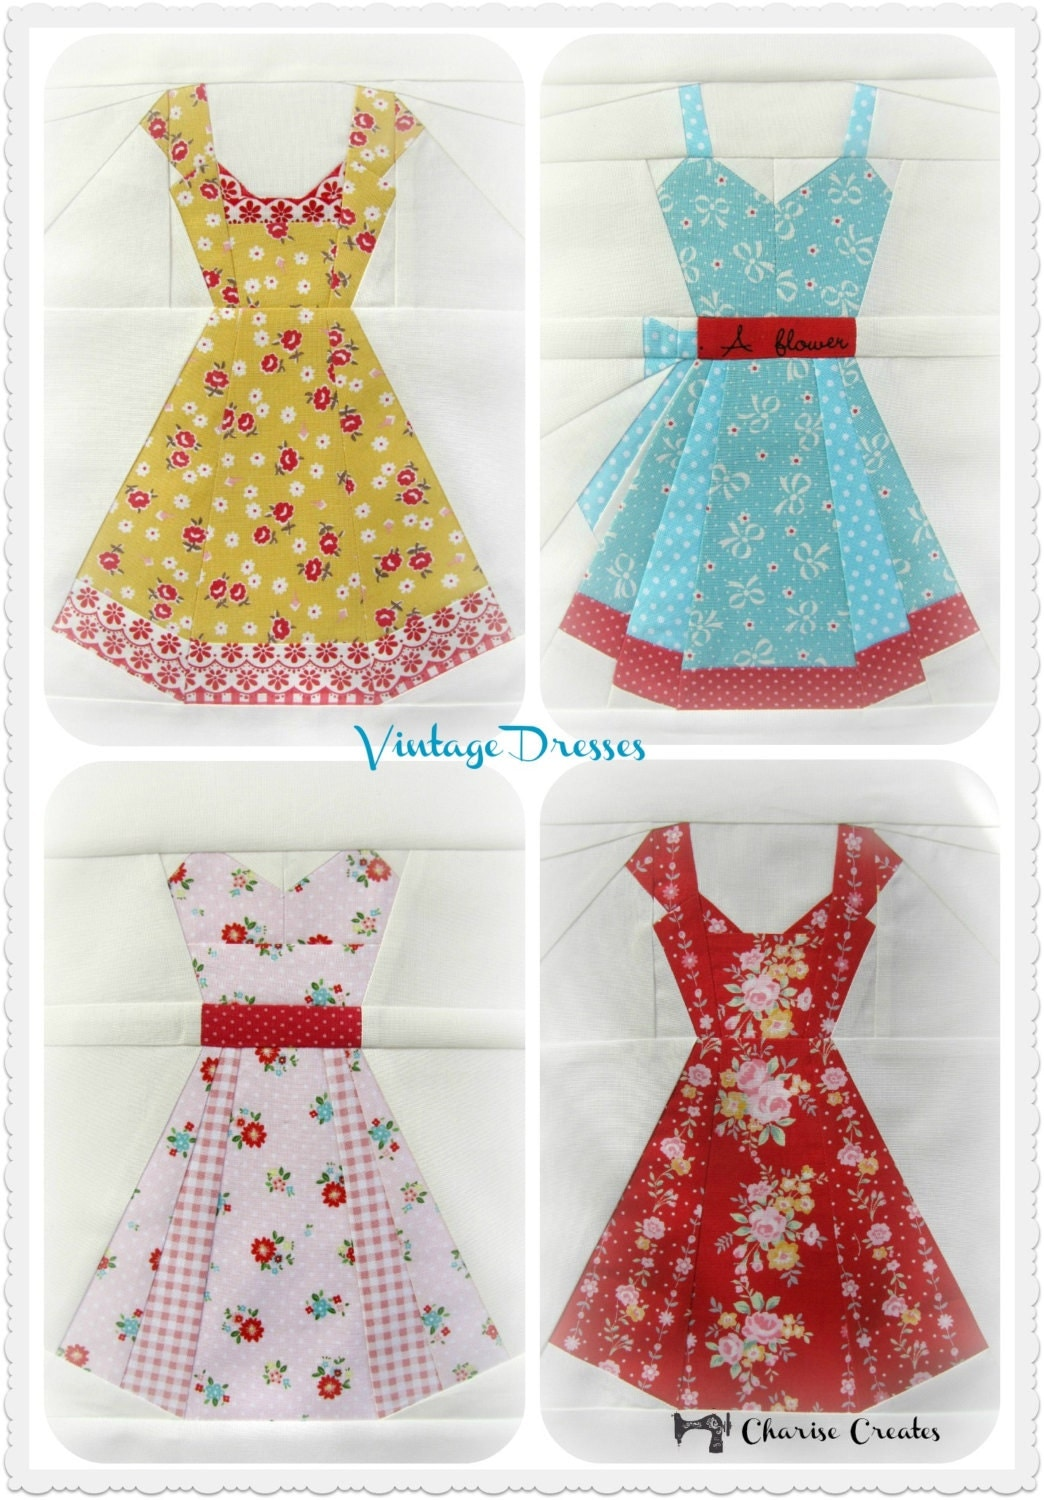 Vintage Dresses a Paper Piecing Pattern